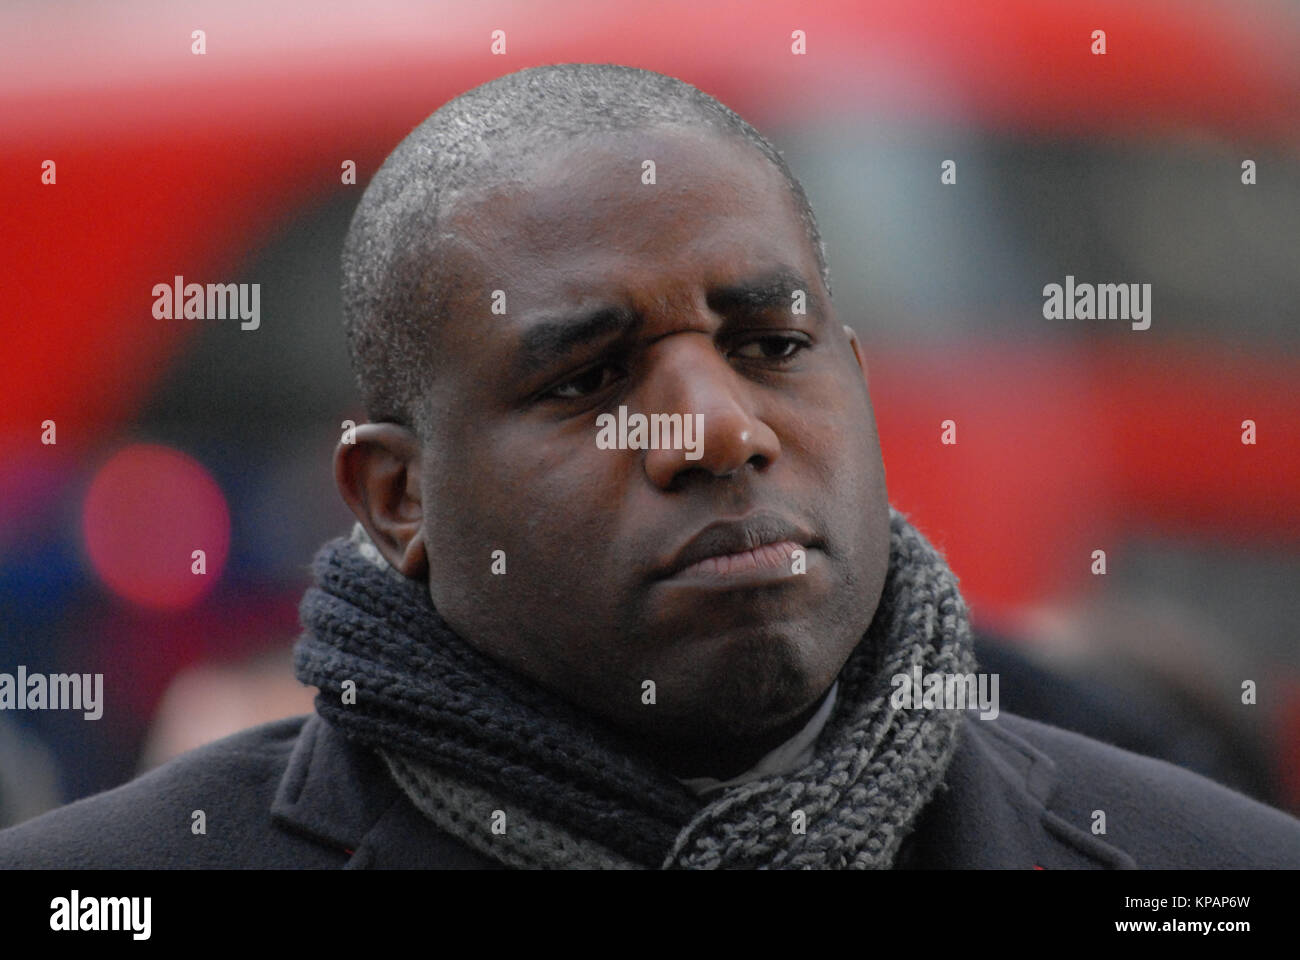 London, UK. 14th Dec, 2017. The Rt Hon David Lammy MP, Member of Parliament for Tottenham, Labour MP, leaves St - Stock Image